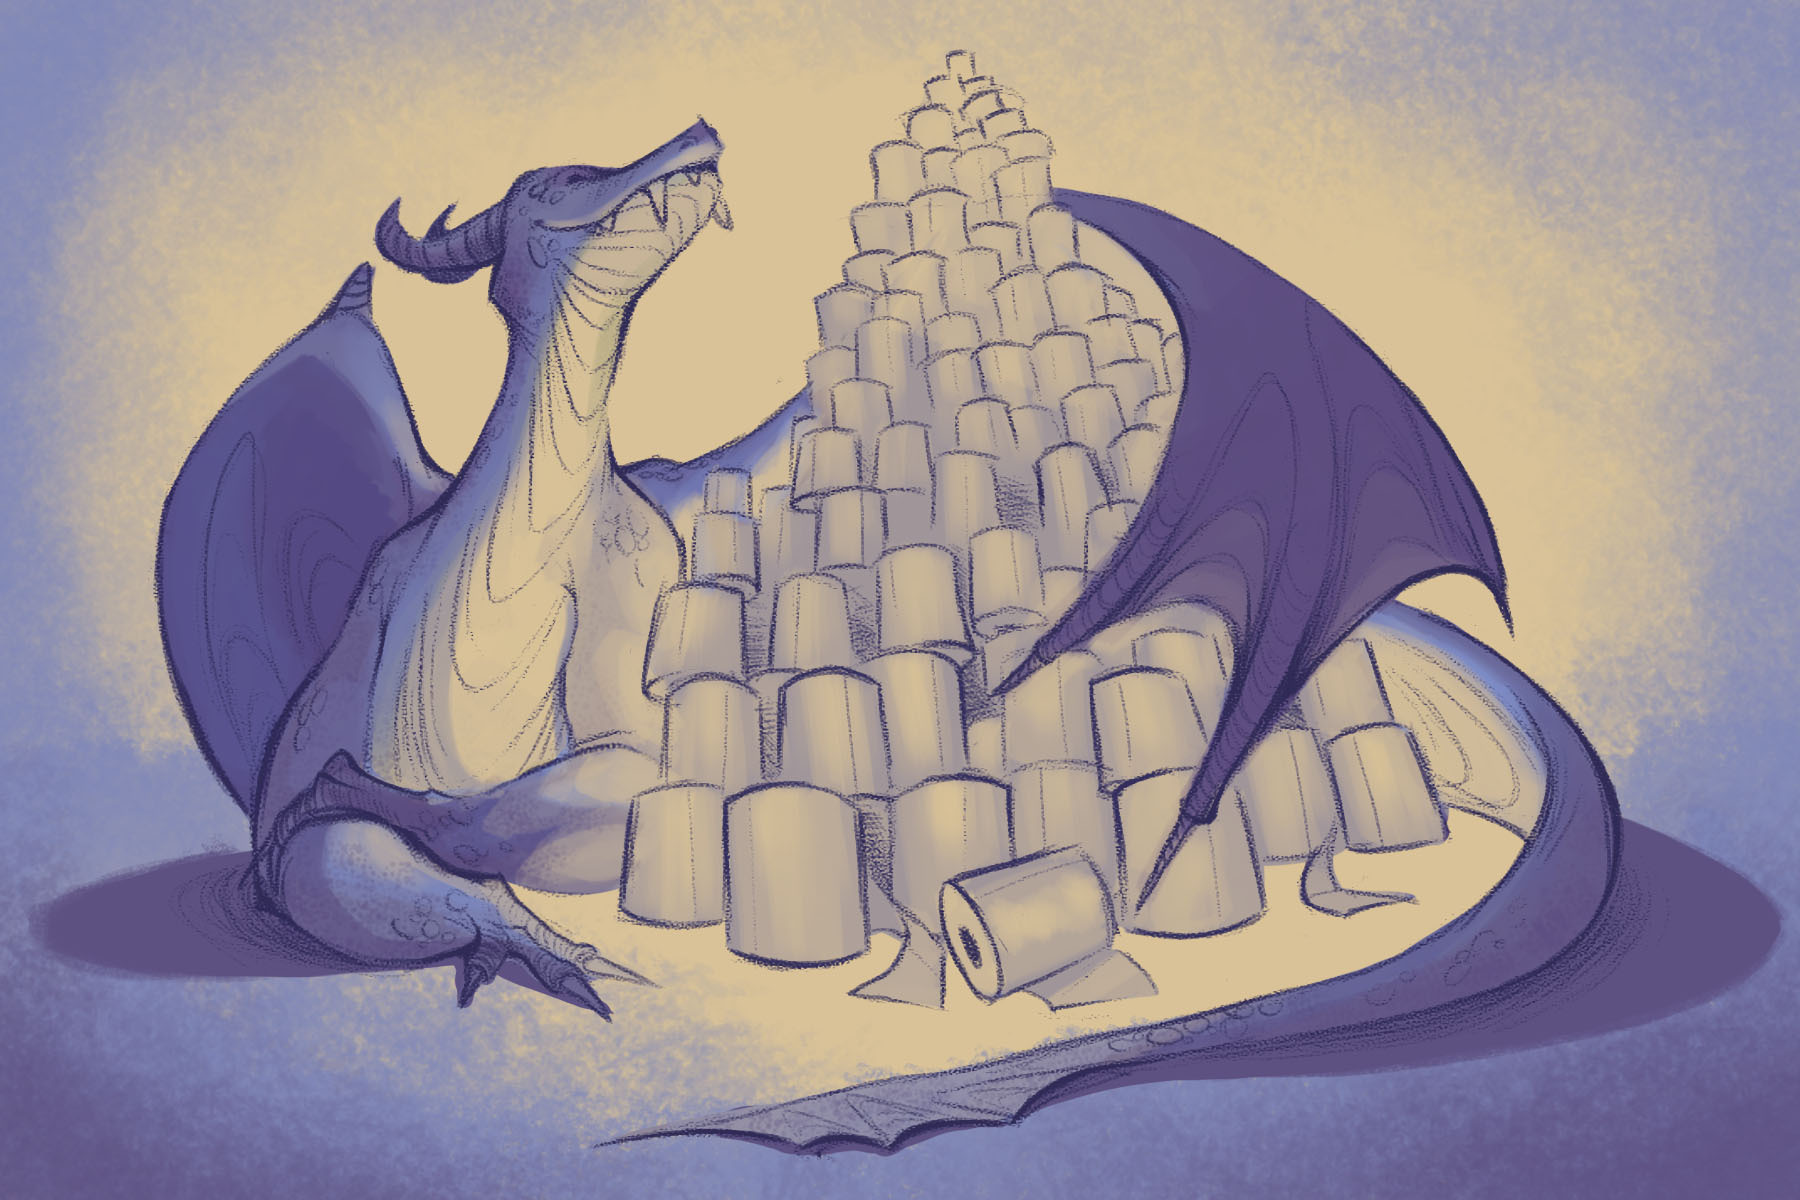 An illustration (by Veronica Chen, Yale University) of a dragon hoarding toilet paper